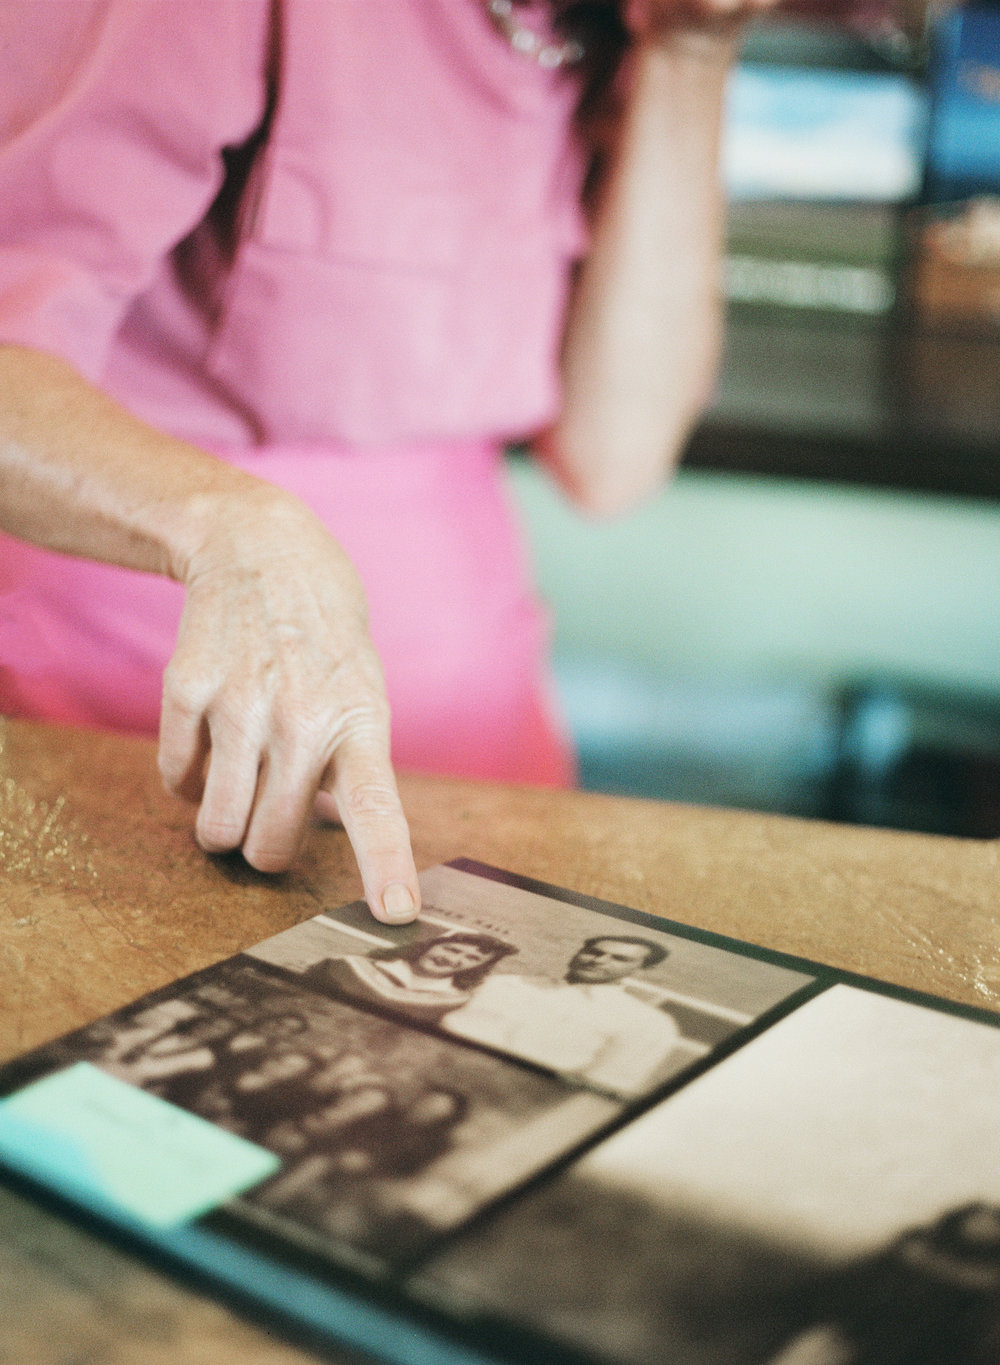 Sheree shows a family album from the settlement of her town in the cafe she works at. Her family settled the town, she has been driving since she was 7, and she knows all the best hot springs in the area. Fayette, population 249 . Fall 2014.